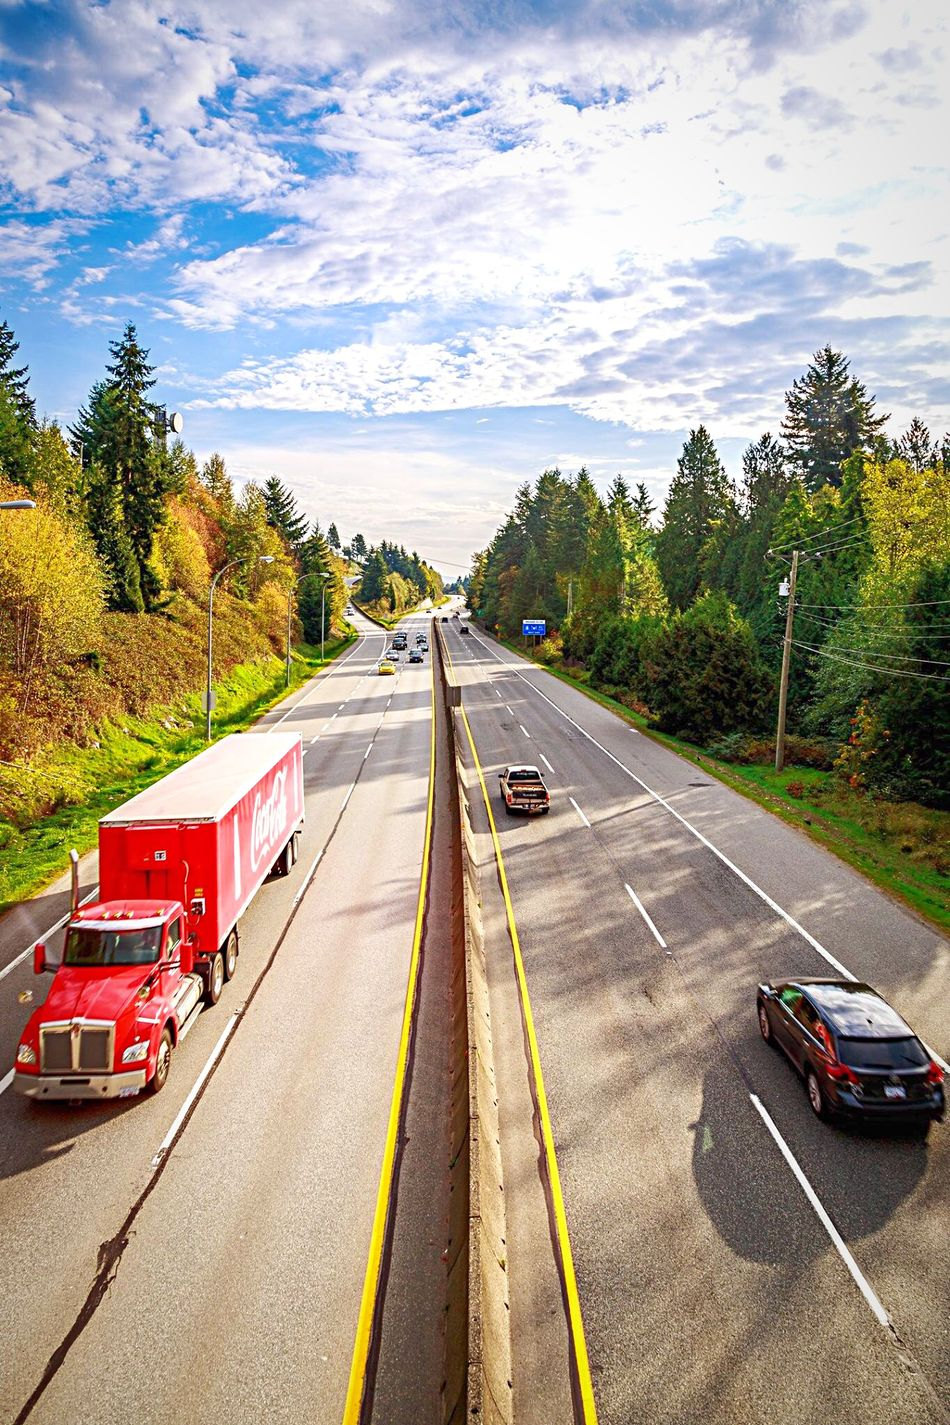 West Vancouver Stree Highway Truck Driving Speed Traffic Vehicle Cars Coca Cola Red